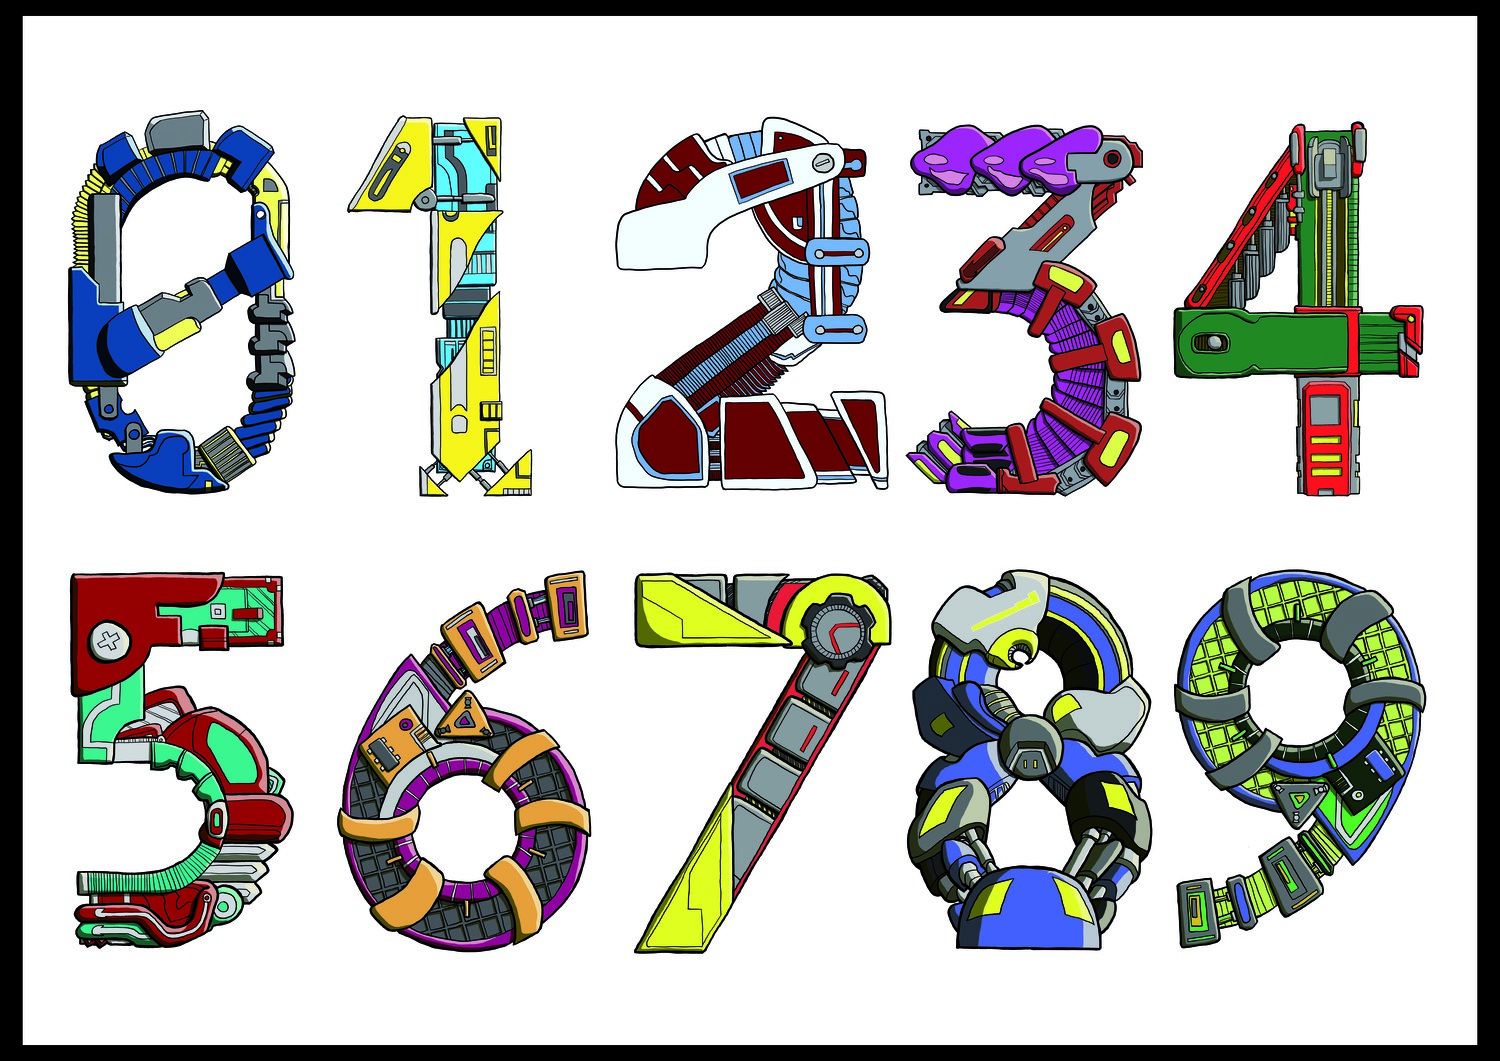 Mechanical letters - 0 to 9